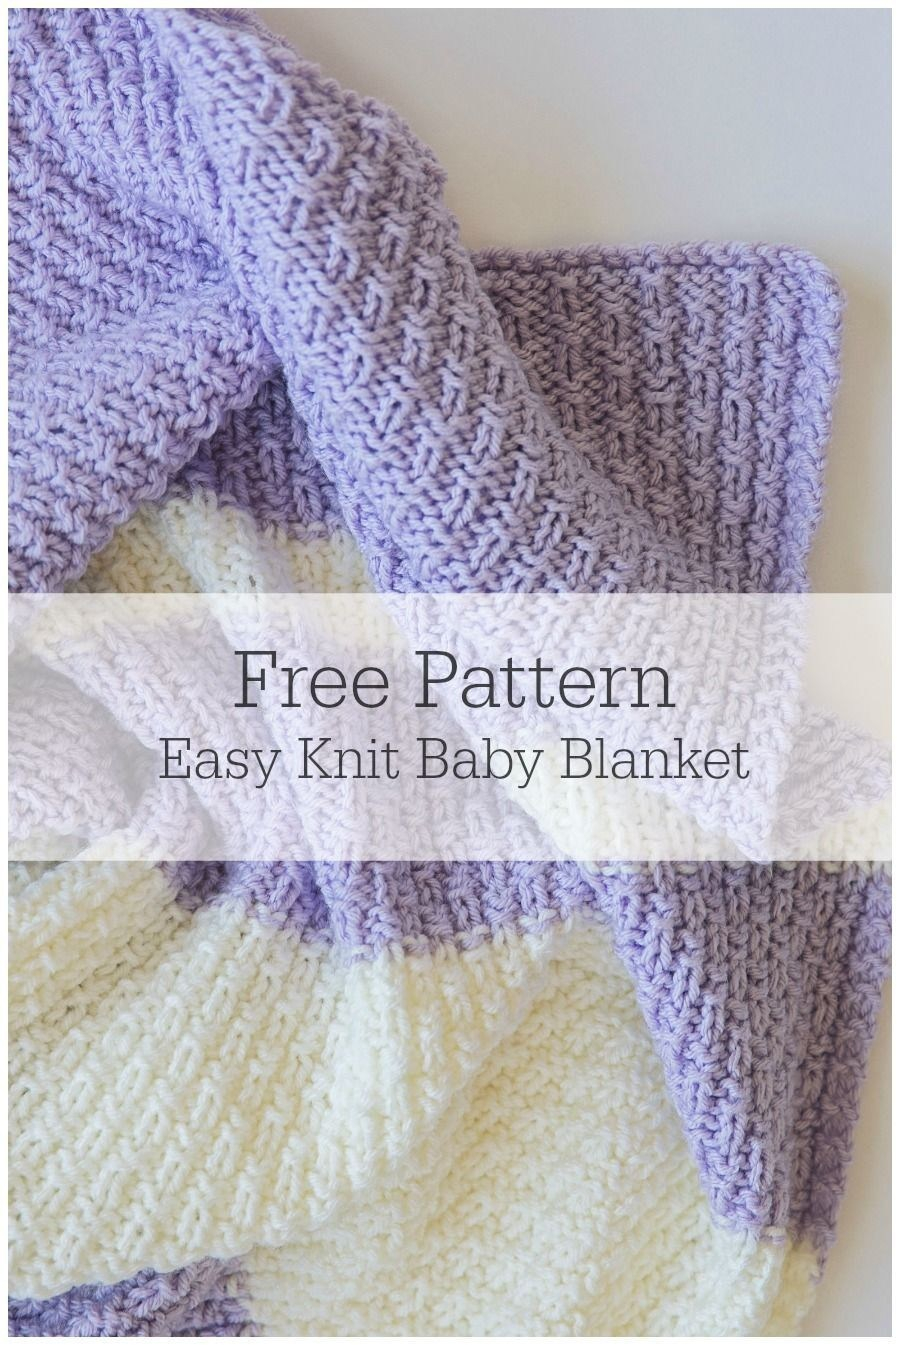 Free Baby Knitting Patterns Pinterest Ba Blankets Patterns Knit Easy Blanket Pattern Pinterest Knitting